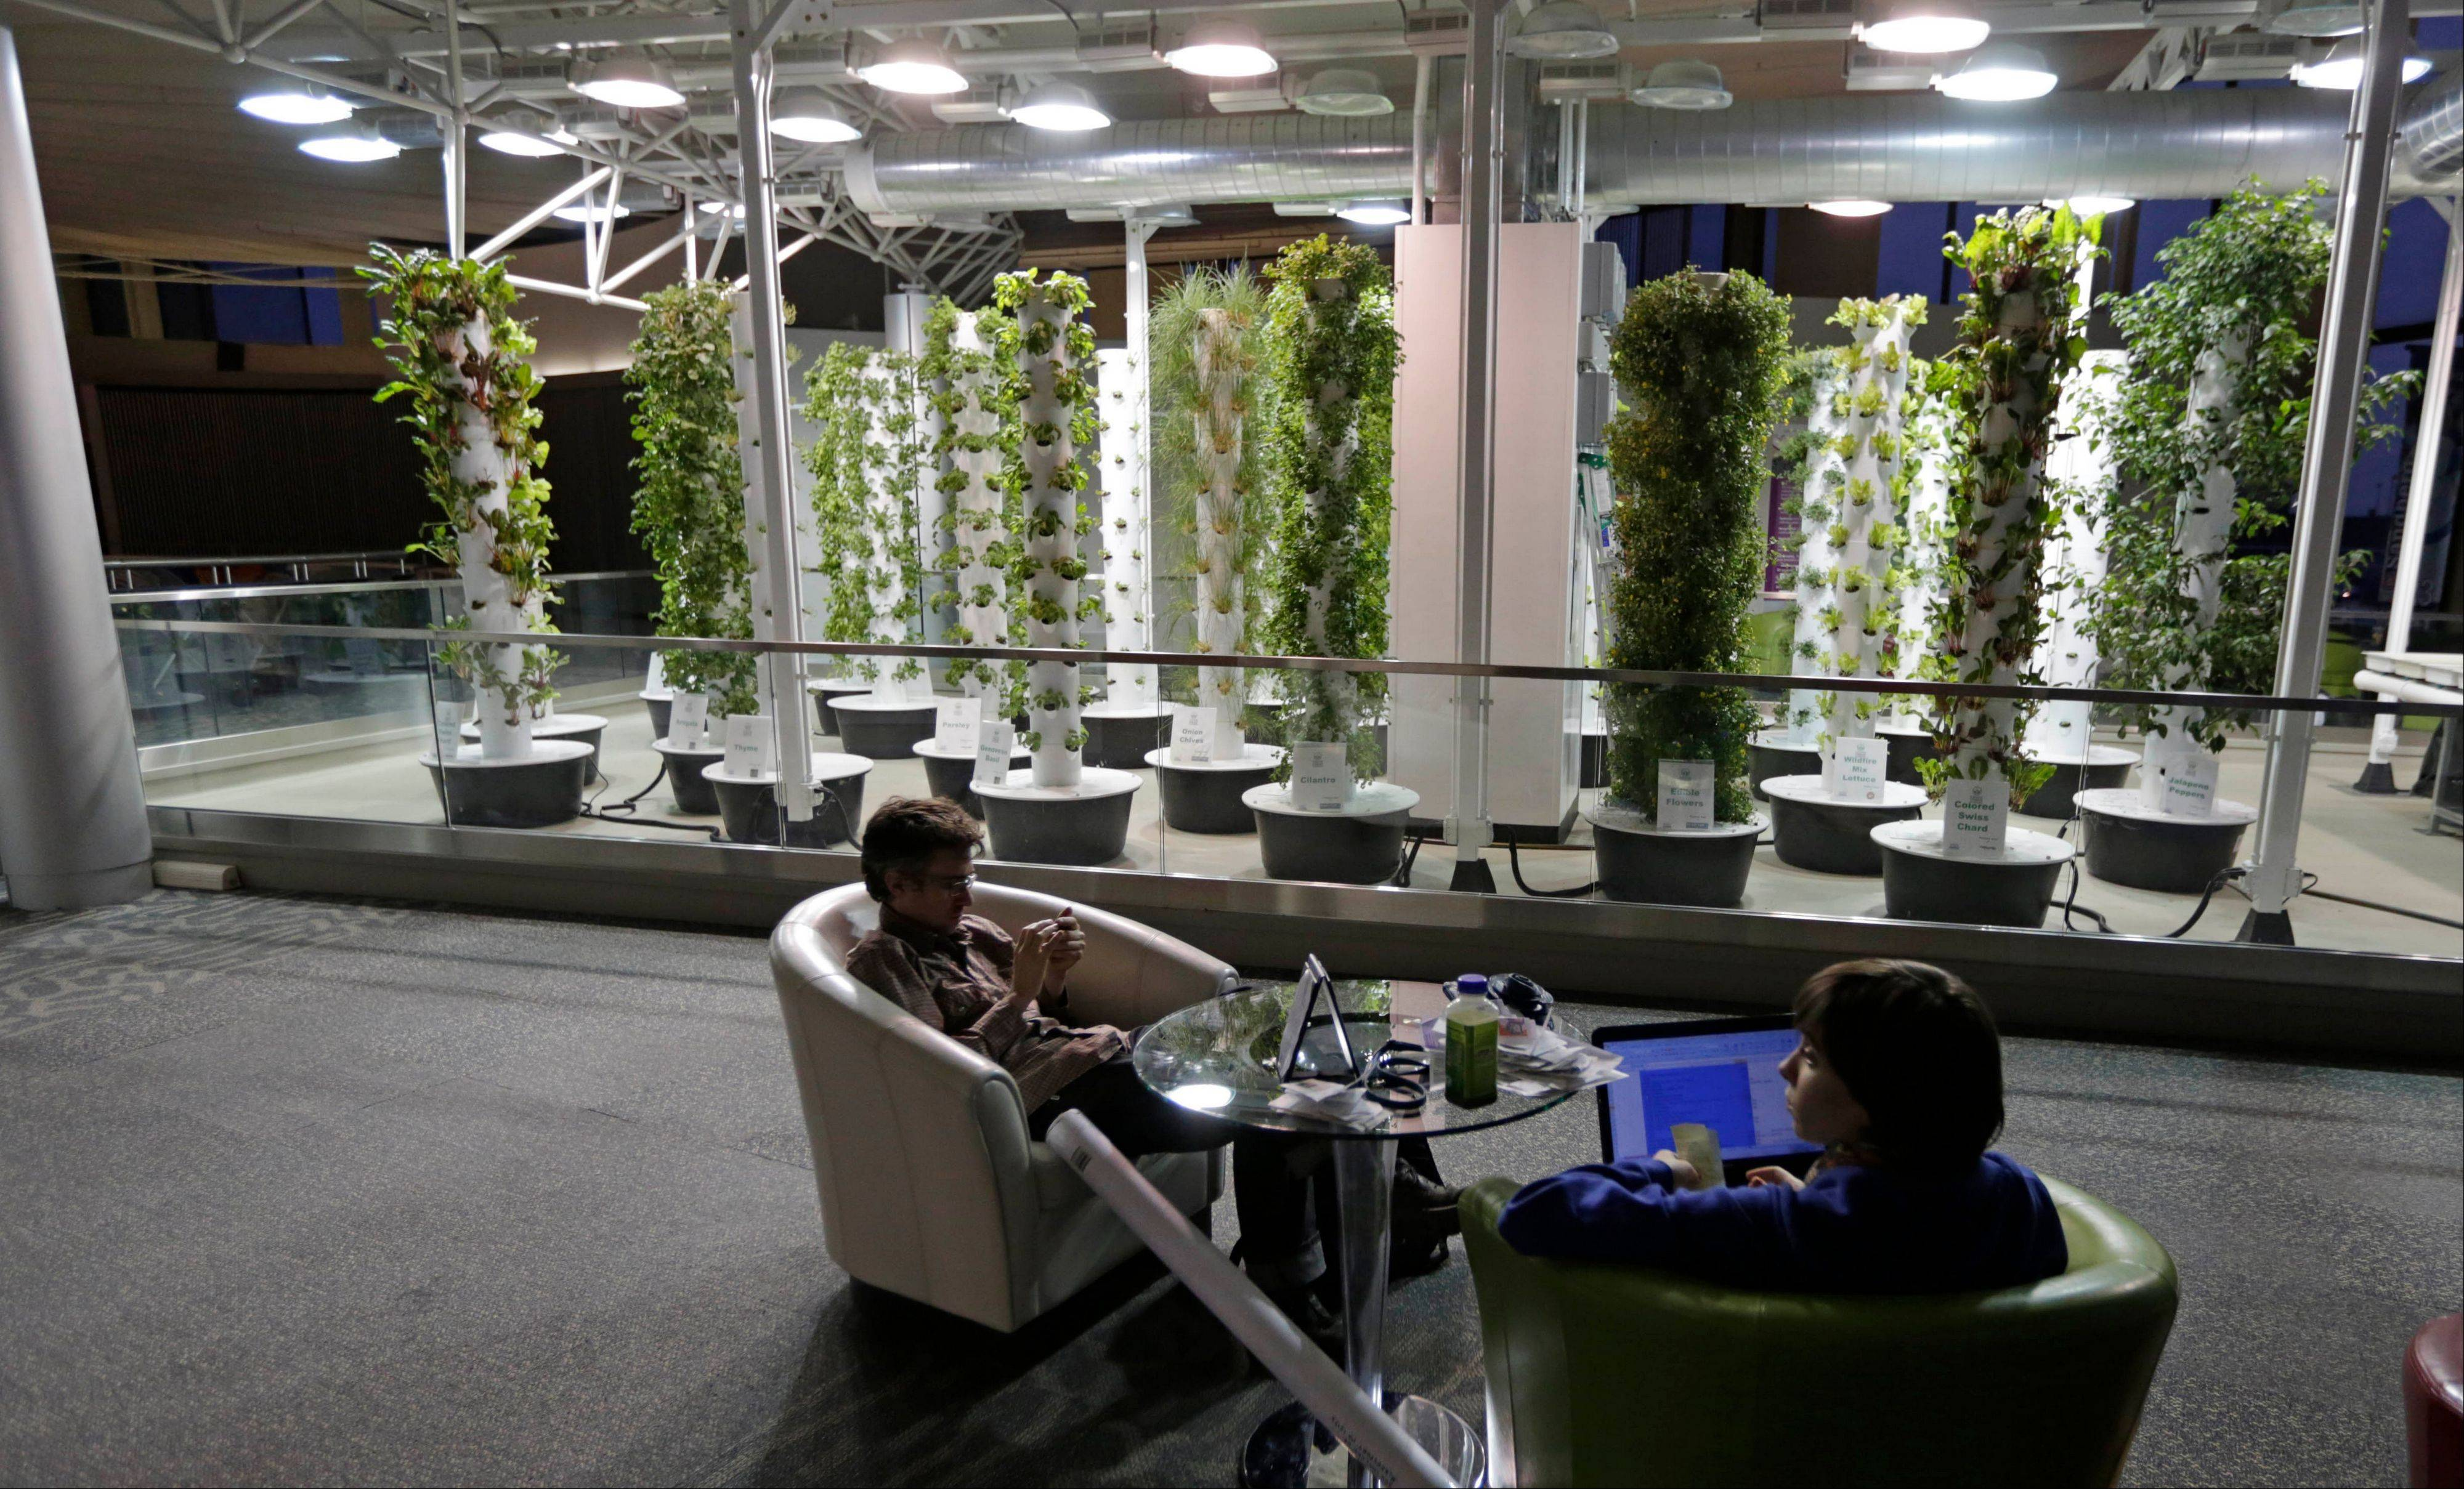 In this photo taken Tuesday, Dec. 18, 2012, at O'Hare International Airport in Chicago, travelers David Janesko and Tess Menotti relax between flights next to O'Hare's Urban Garden where fresh herbs are grown and used in airport restaurants.